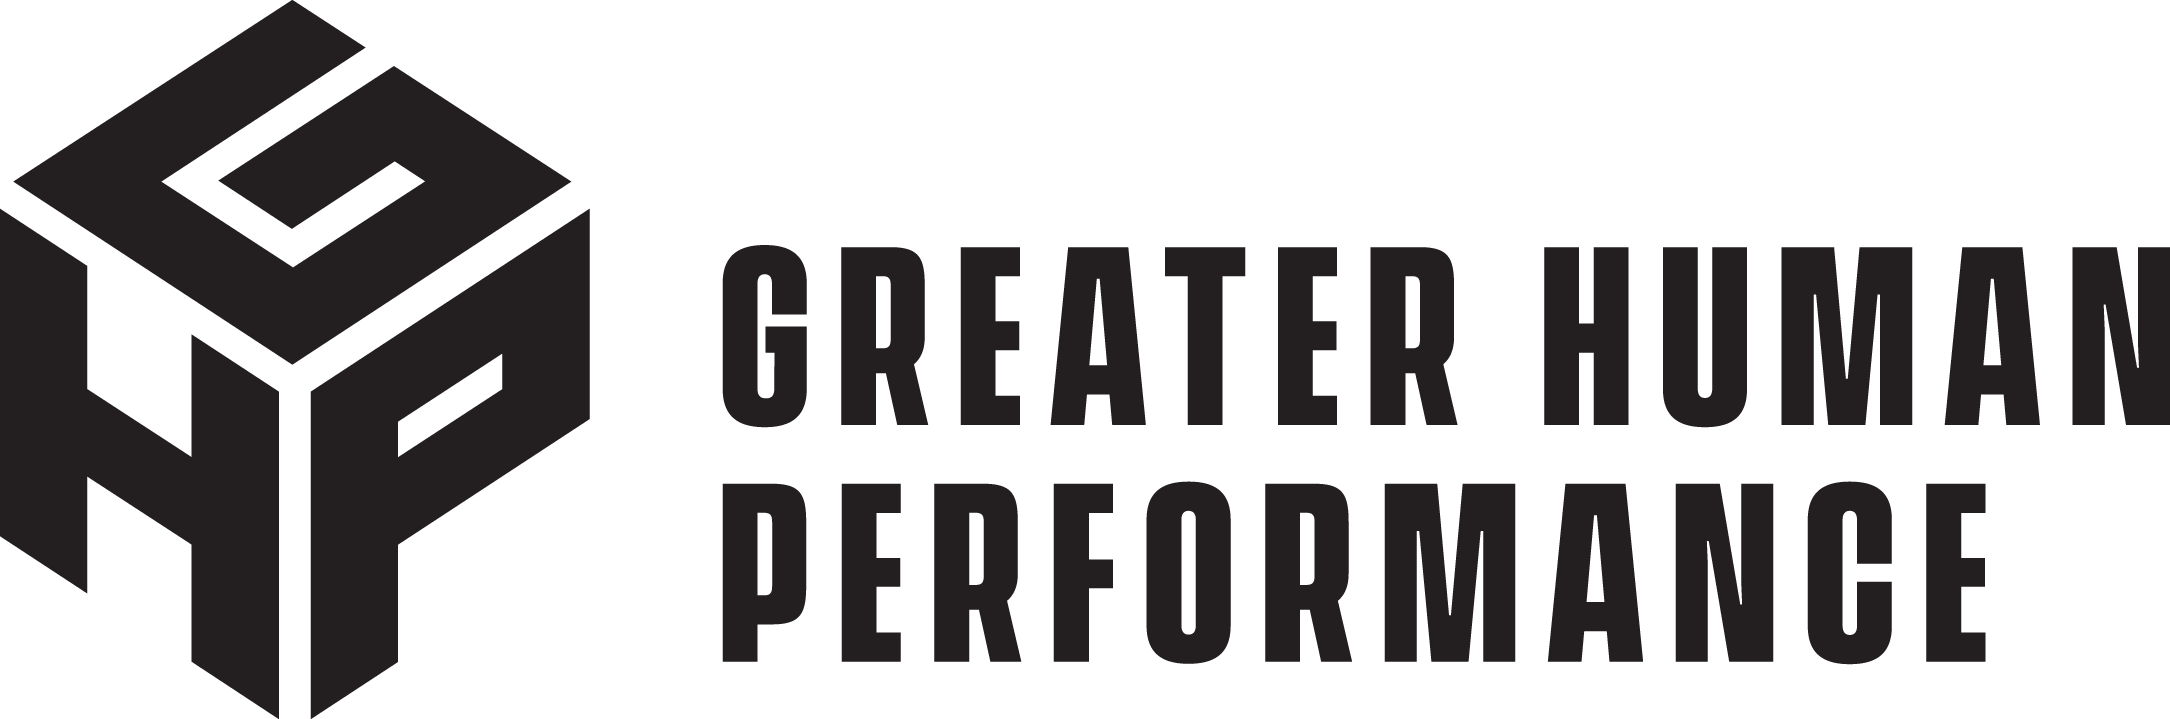 GreaterHumanPerformance